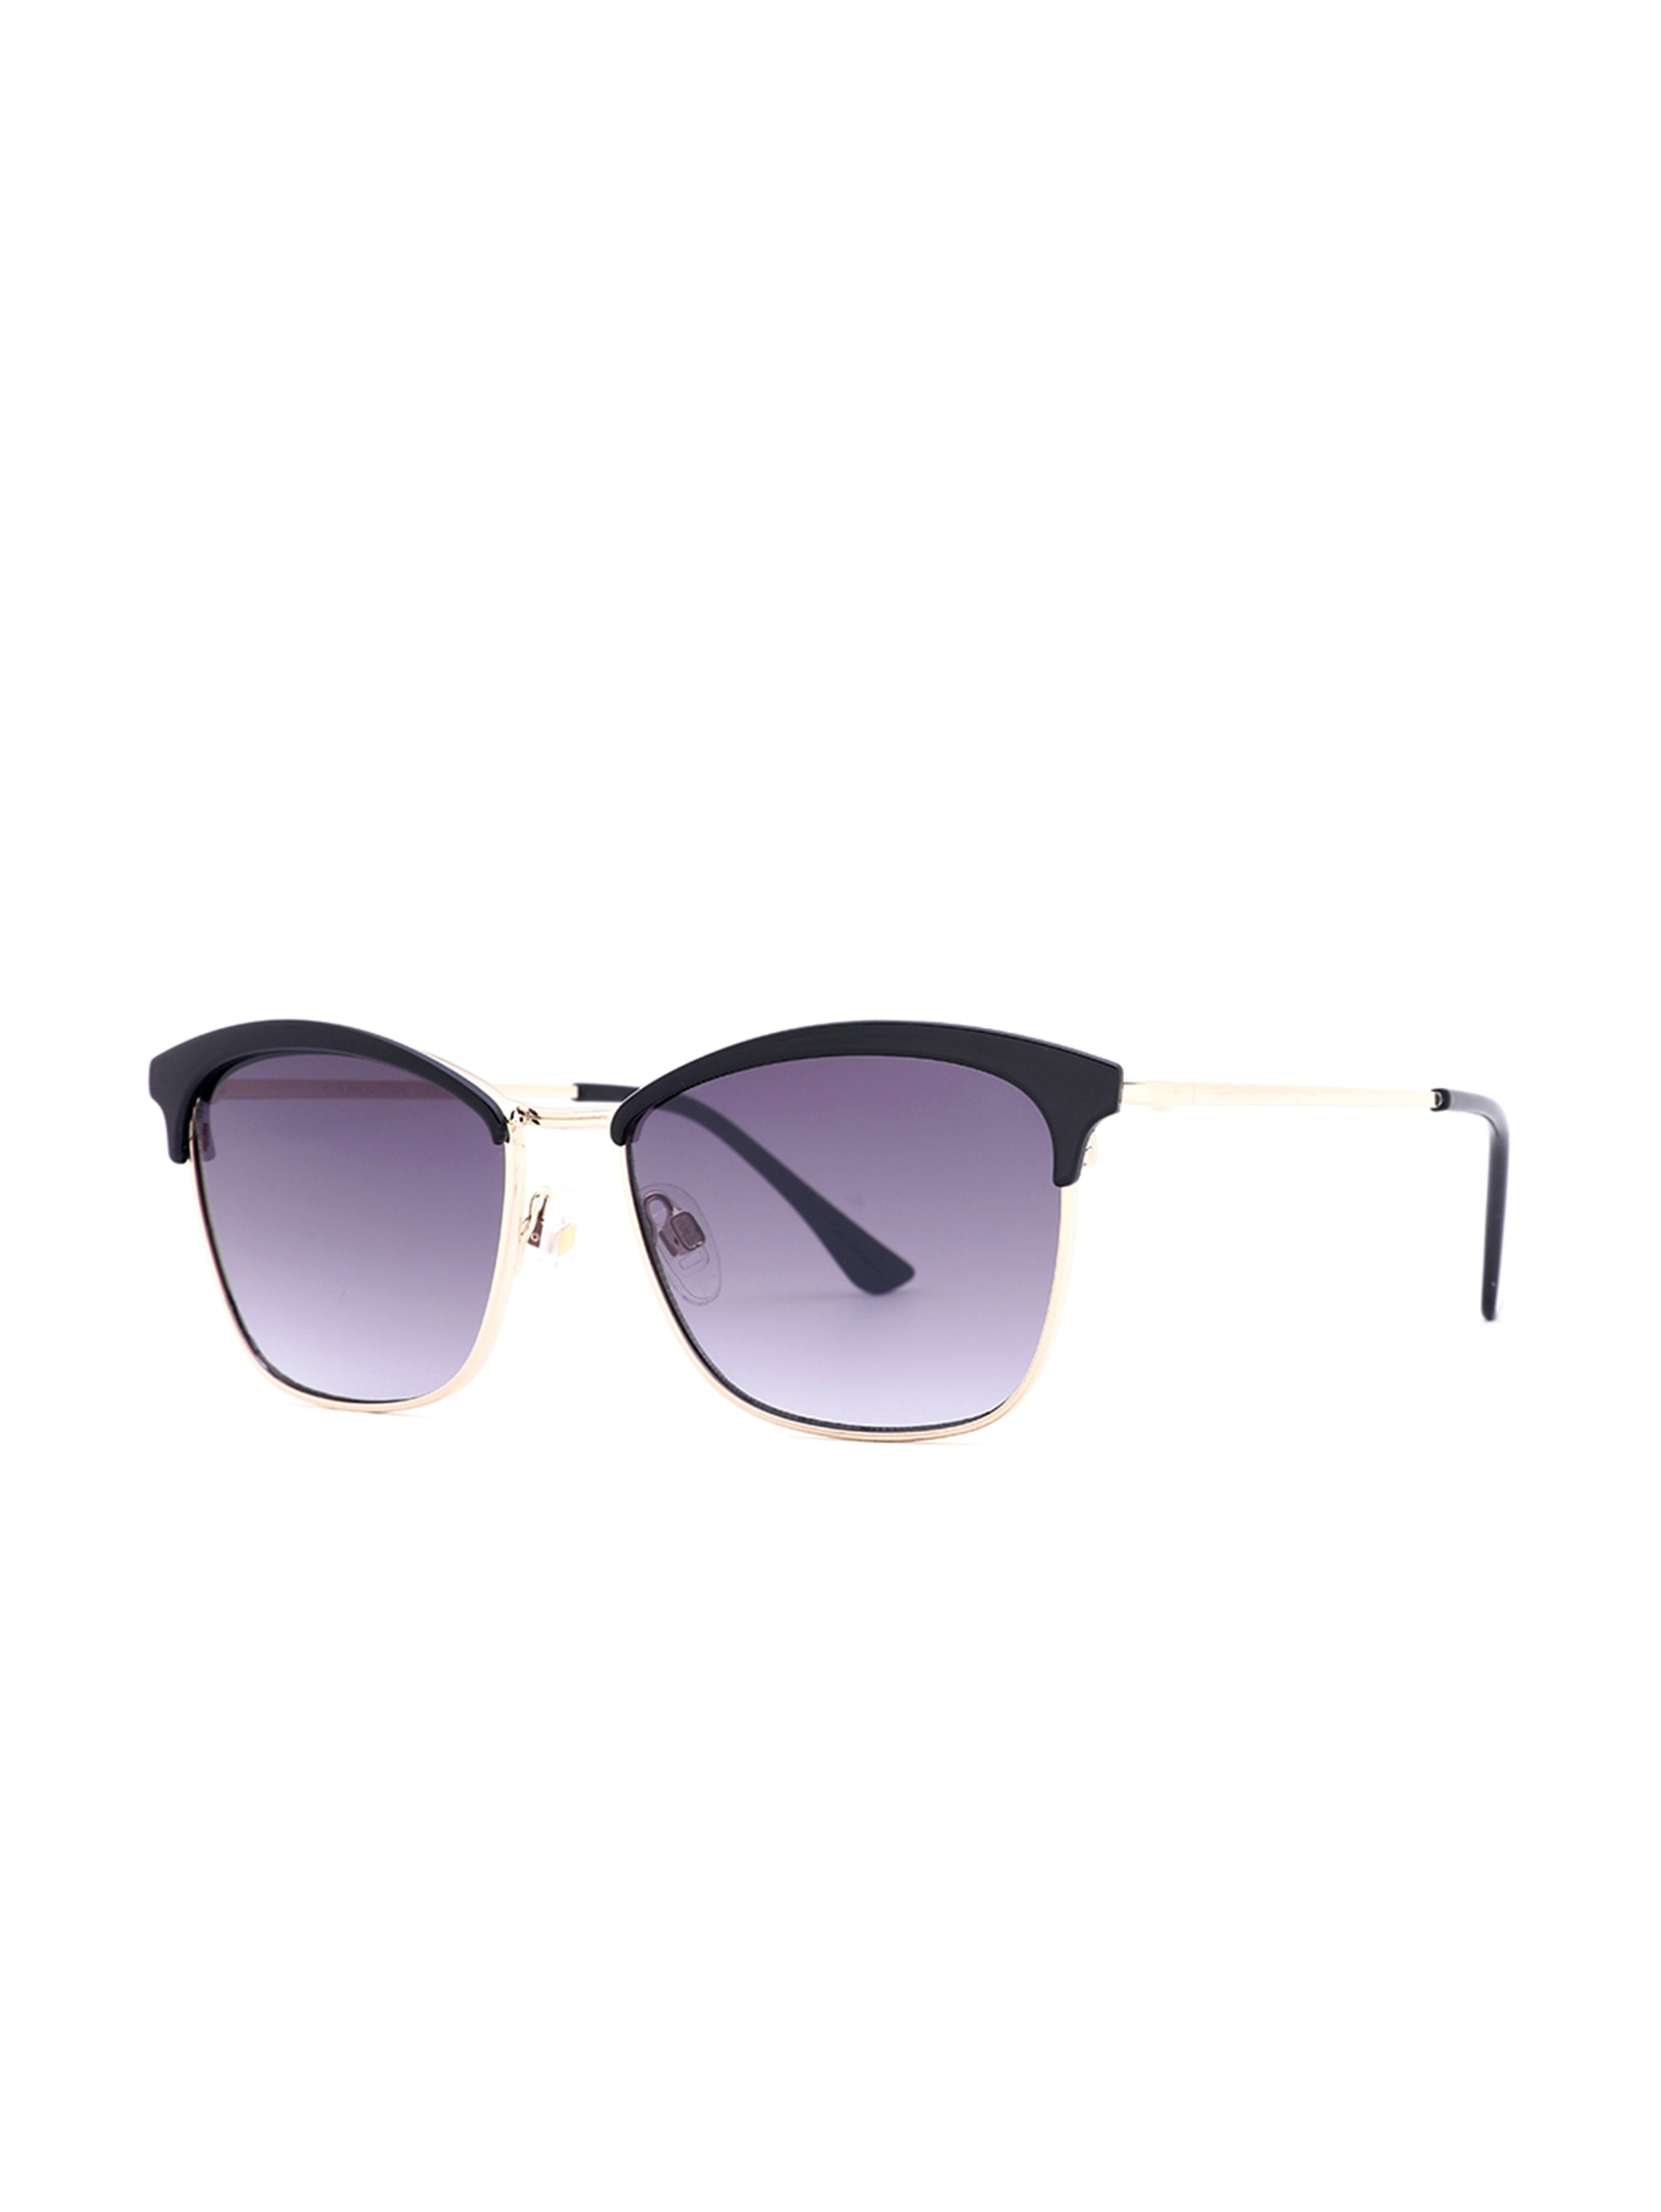 Lentes Carolina Lemke CL1723 01